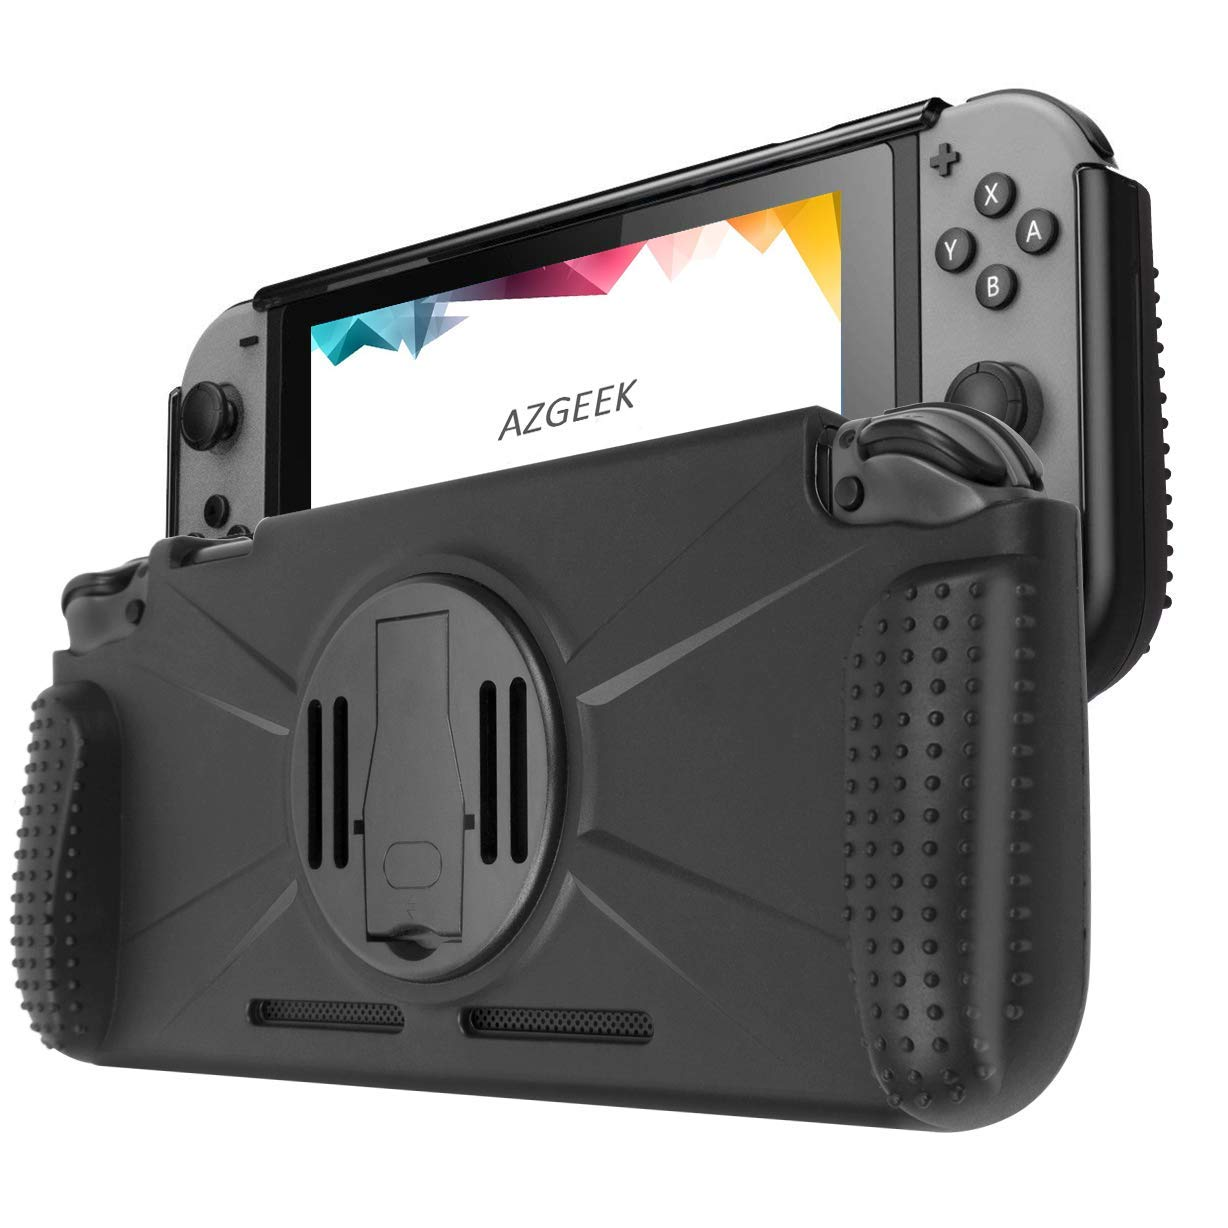 AZGEEK Protective Case Compatible for Nintendo switch, Carrying and Portable Cover with Shock Absorbing and Scratch Resistant Design (Black)